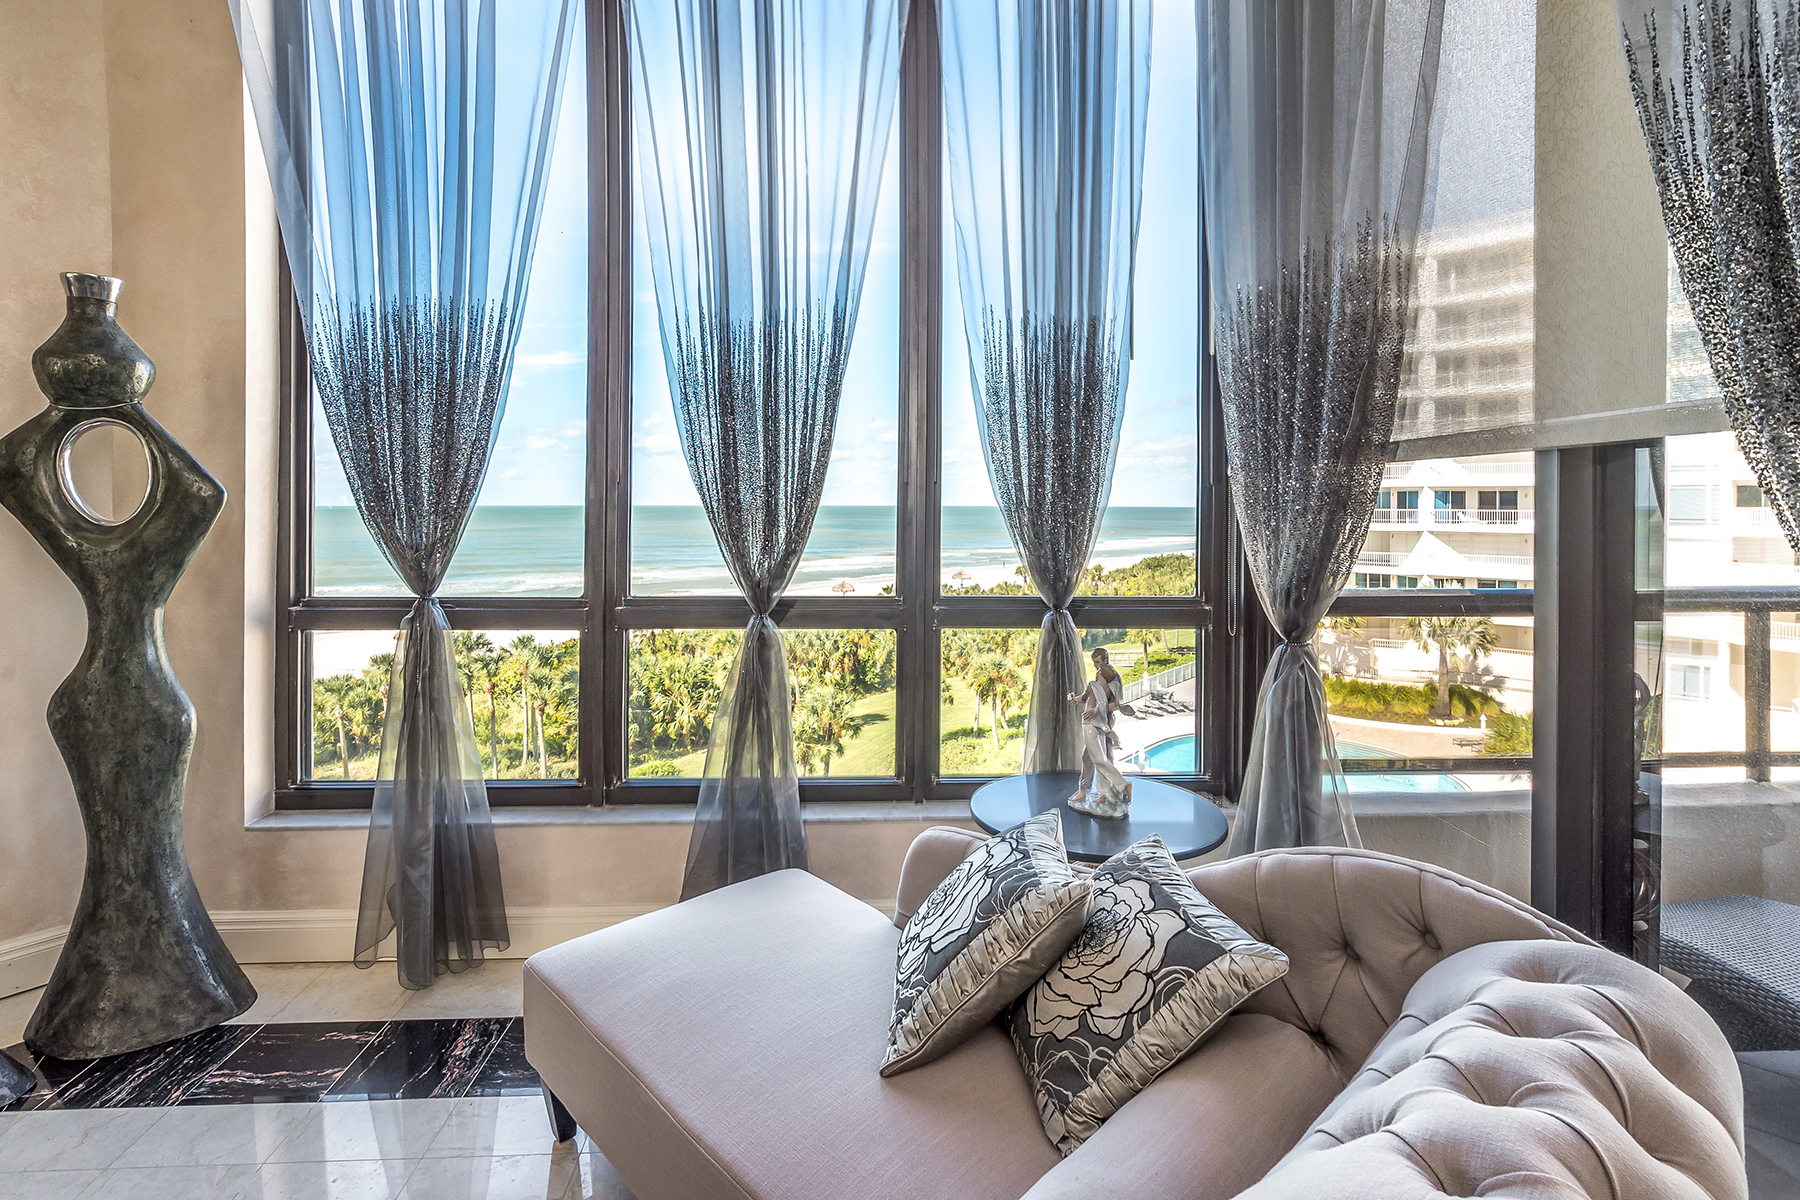 Additional photo for property listing at L AMBIANCE AT LONGBOAT KEY 435  L Ambiance Dr L407,  Longboat Key, Florida 34228 United States